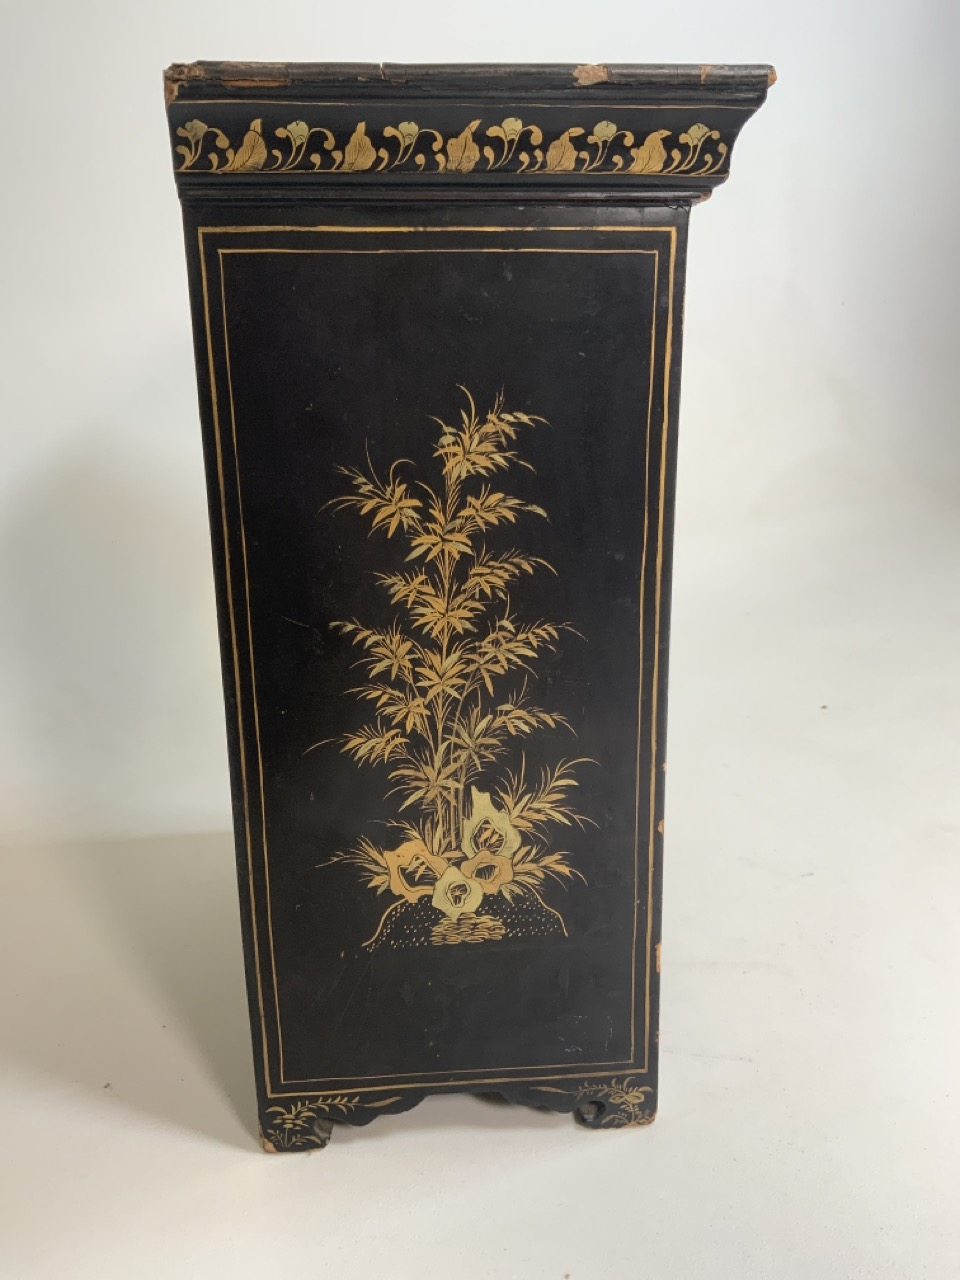 A black lacquered Japanese jewellery chest of five drawers with extensive gilt painted decoration - Image 9 of 13